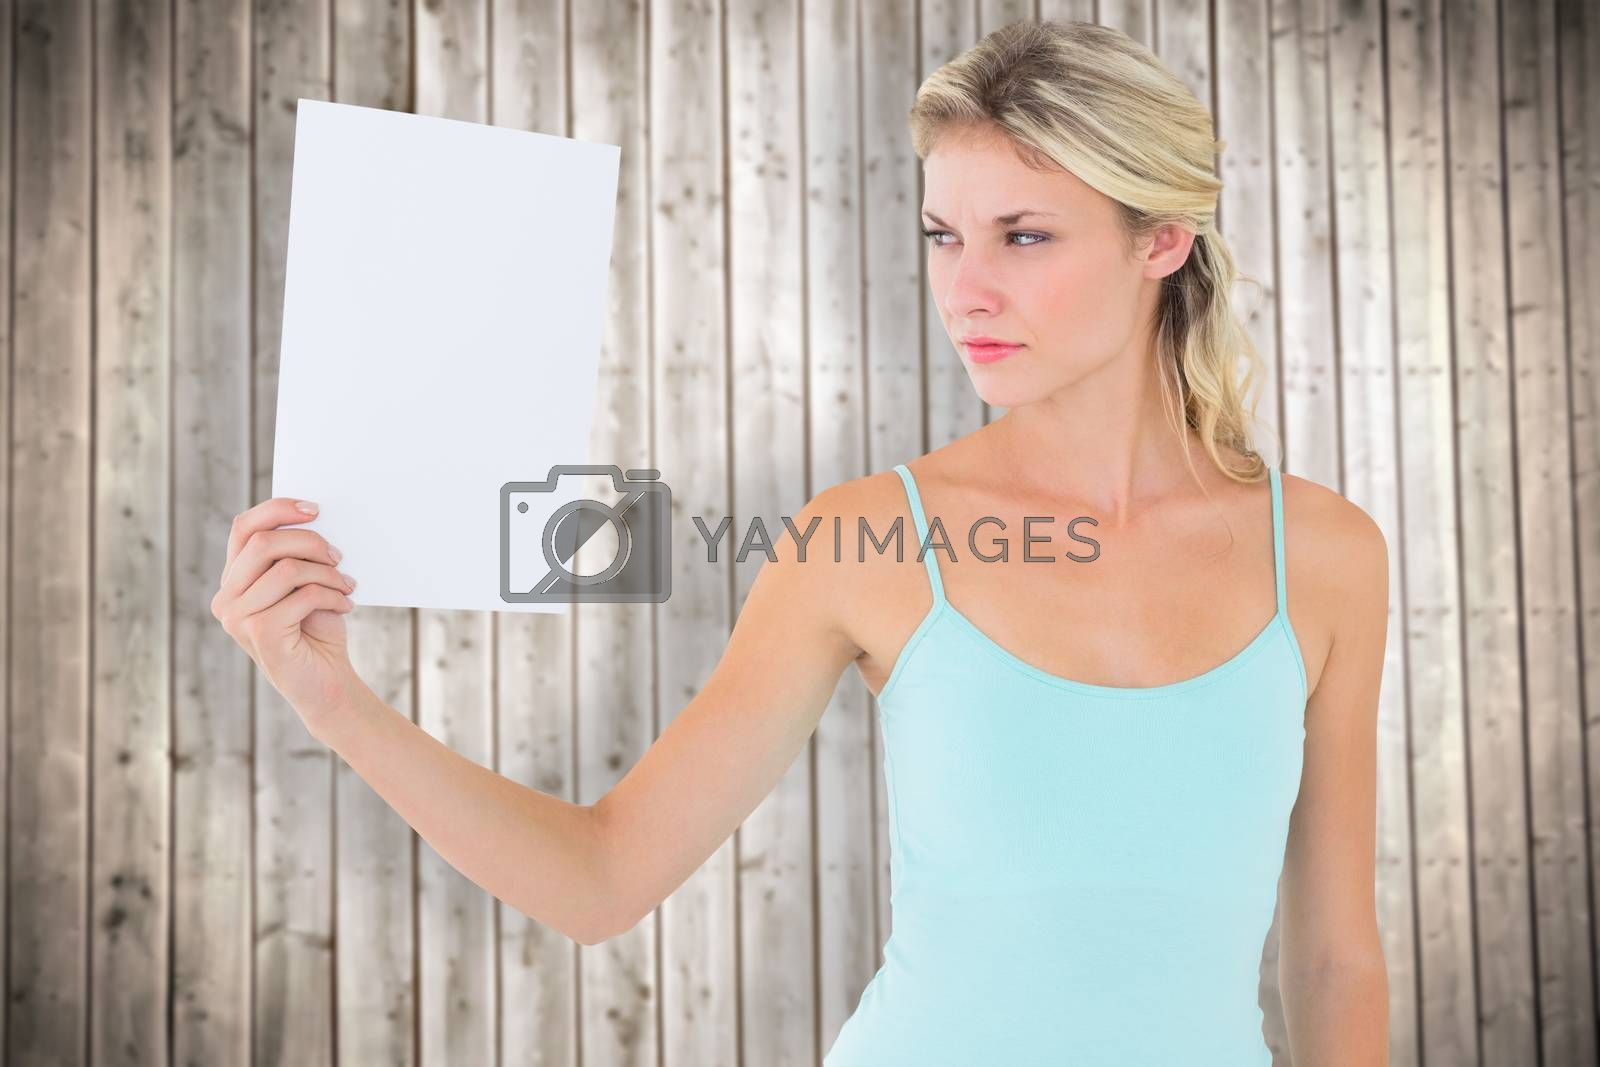 Angry blonde holding a sheet of paper against wooden planks background